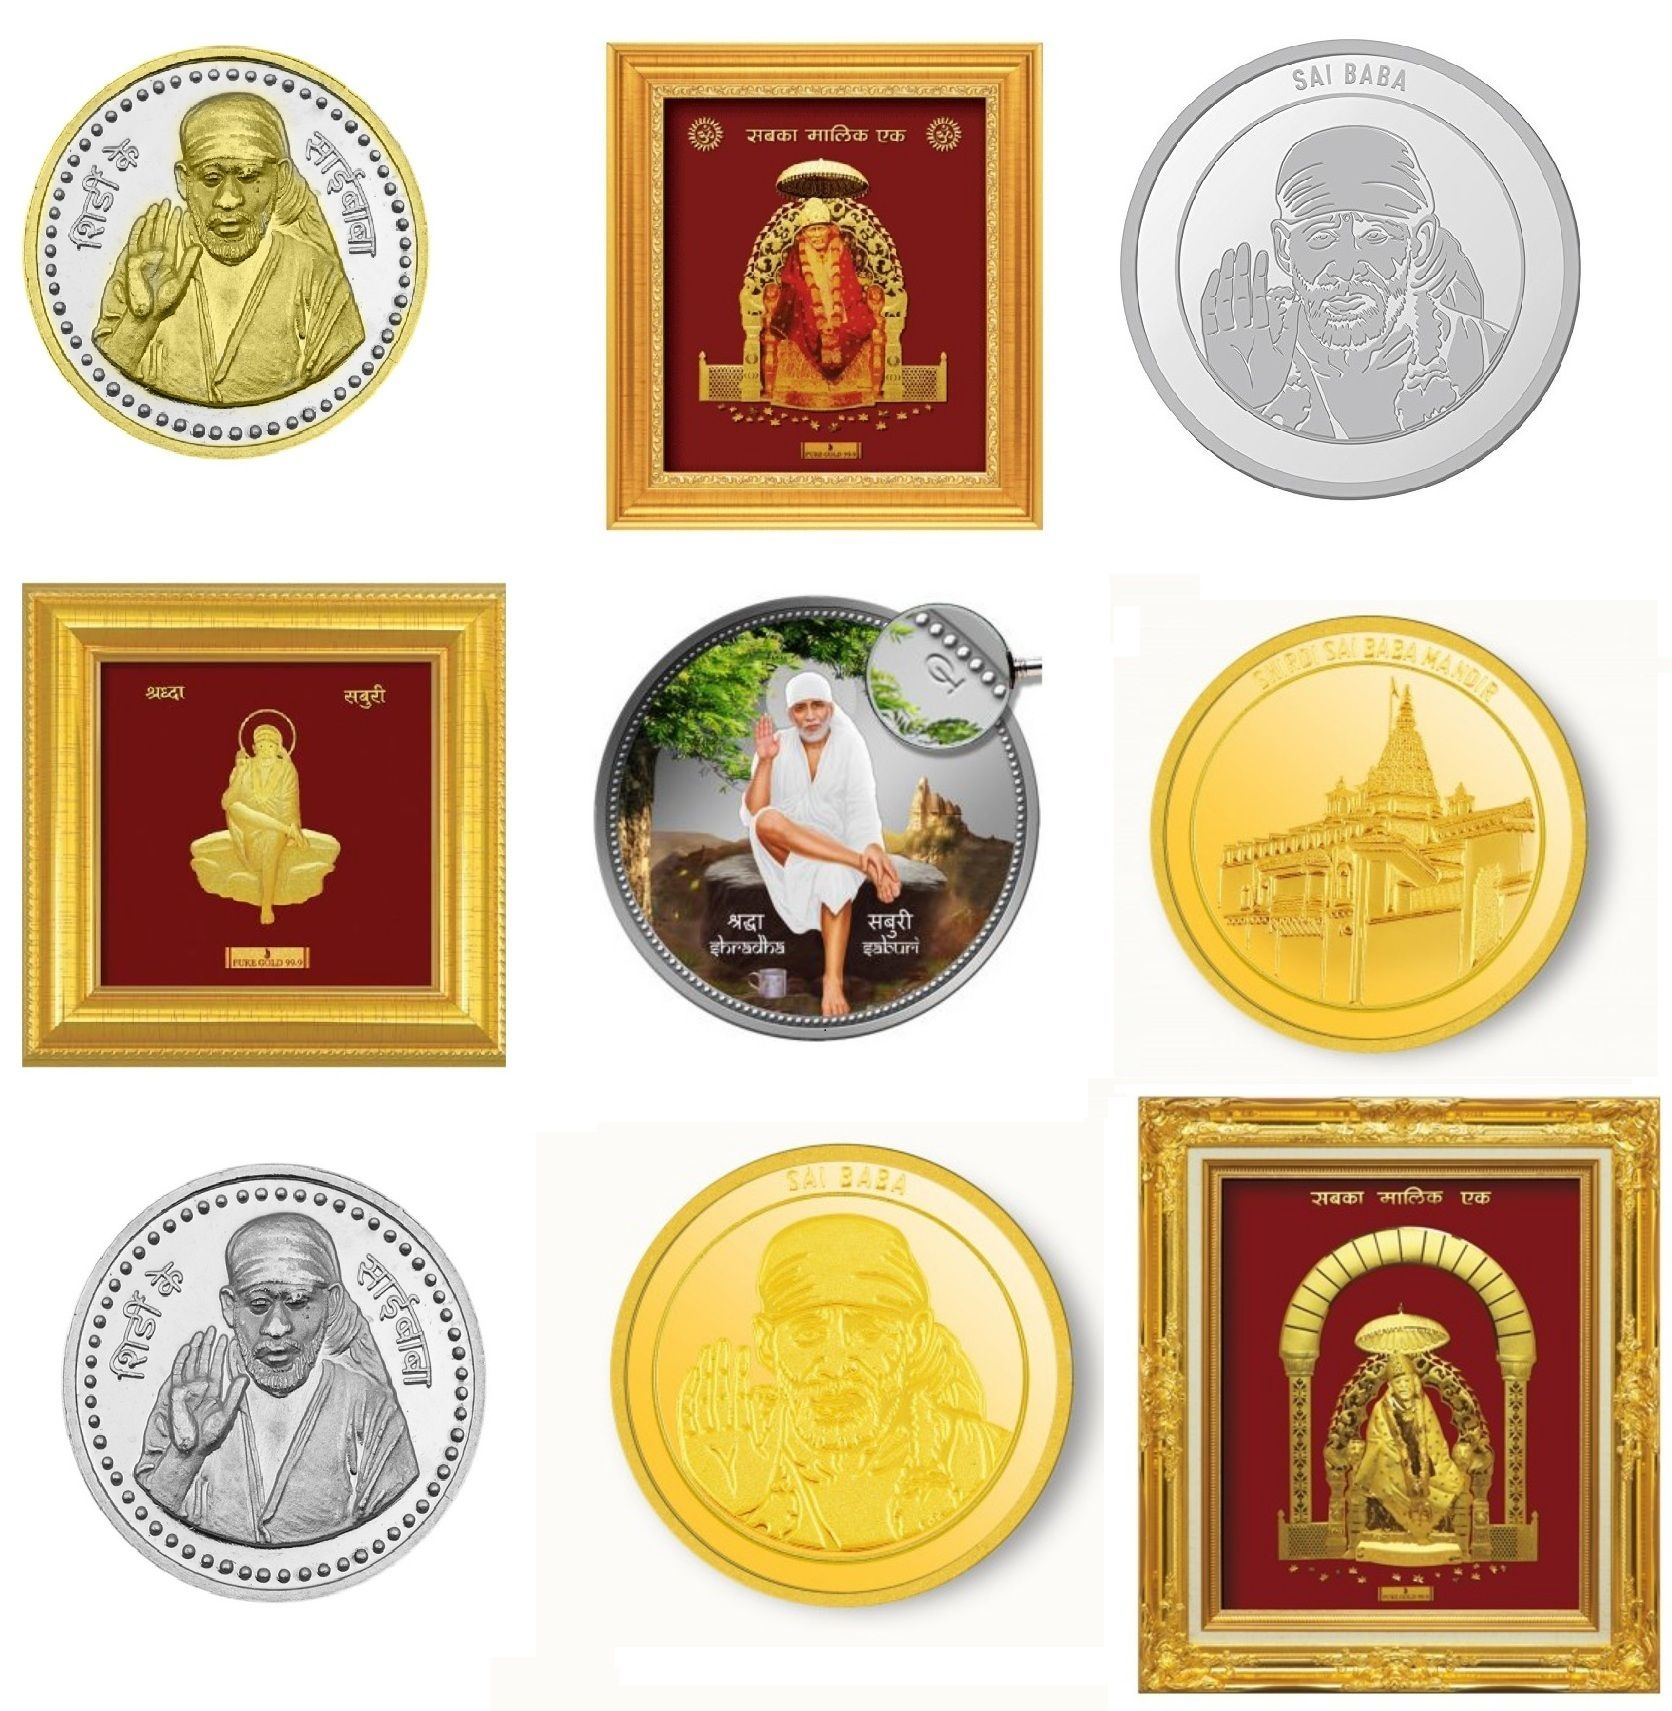 Back In Stock Sai Baba Silver Gold Coins With New Designs Check Out The Collection Of These Coins And Order Hurry Silver Coins Coins Gold Coins